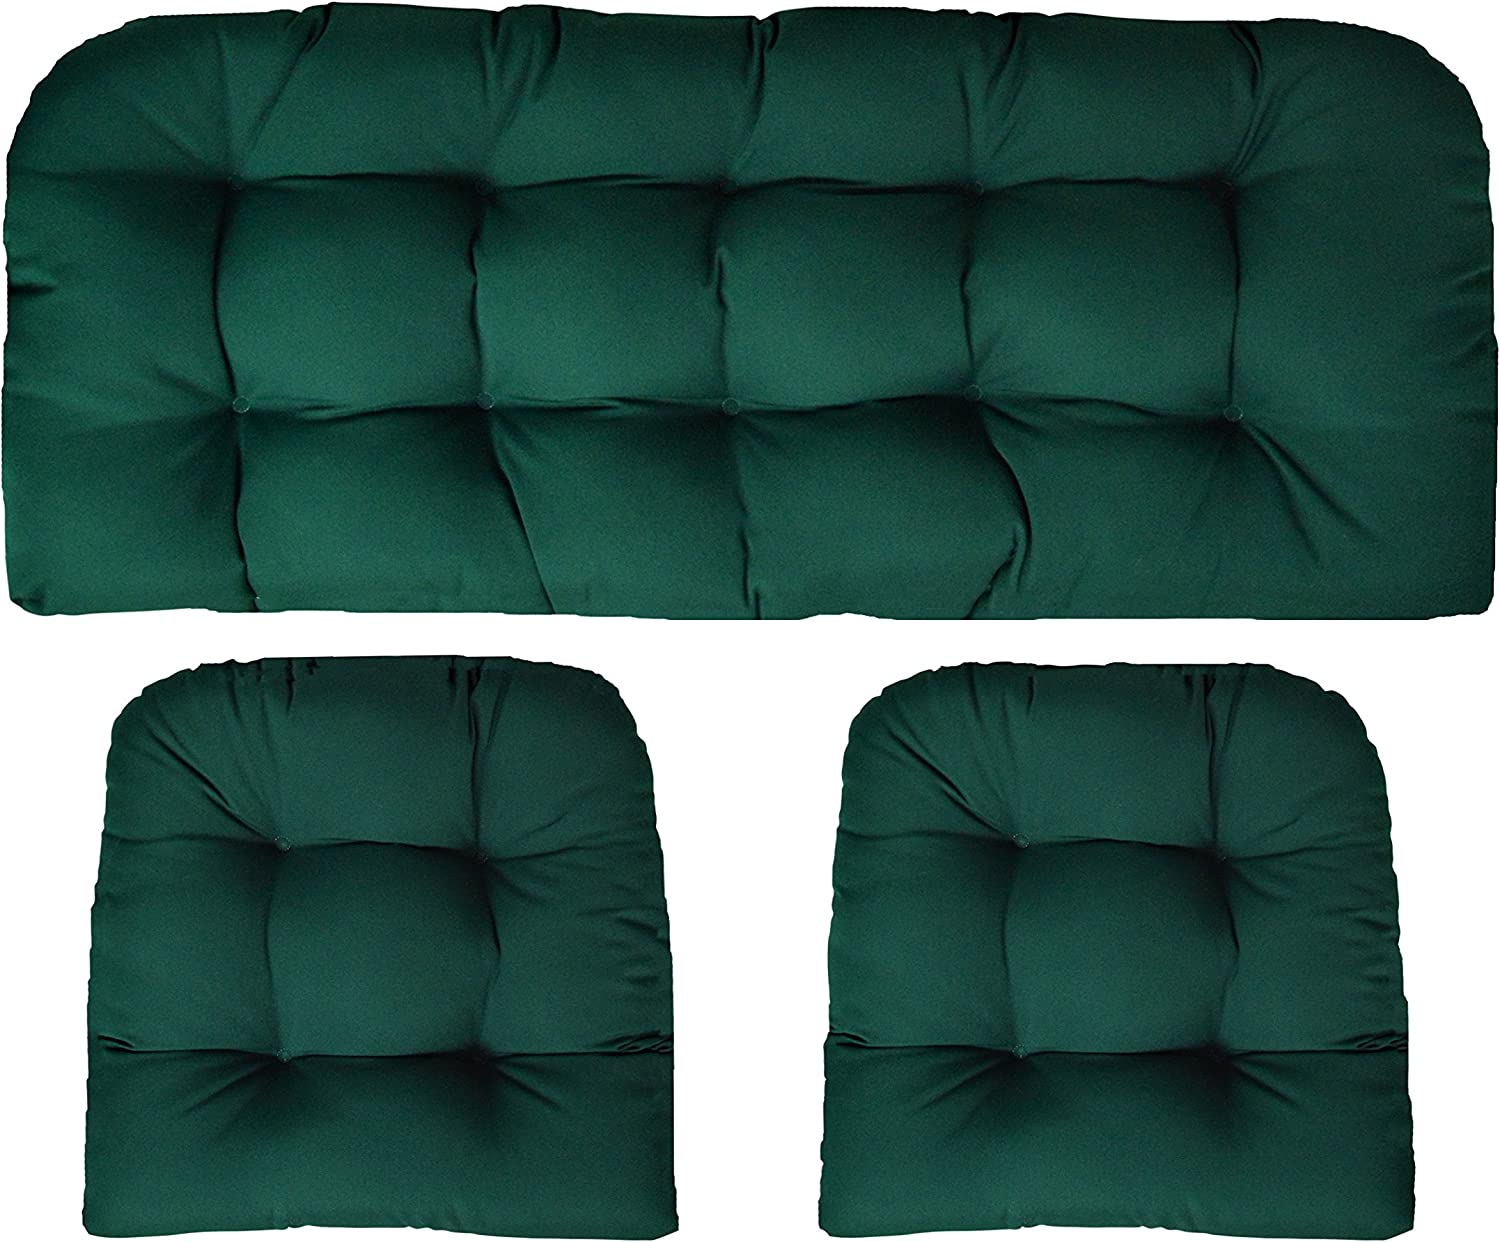 RSH Decor Sunbrella Canvas Forest Green 3 Piece Wicker Cushion Set – Indoor Outdoor Wicker Loveseat Settee 2 Matching Chair Cushions – Green